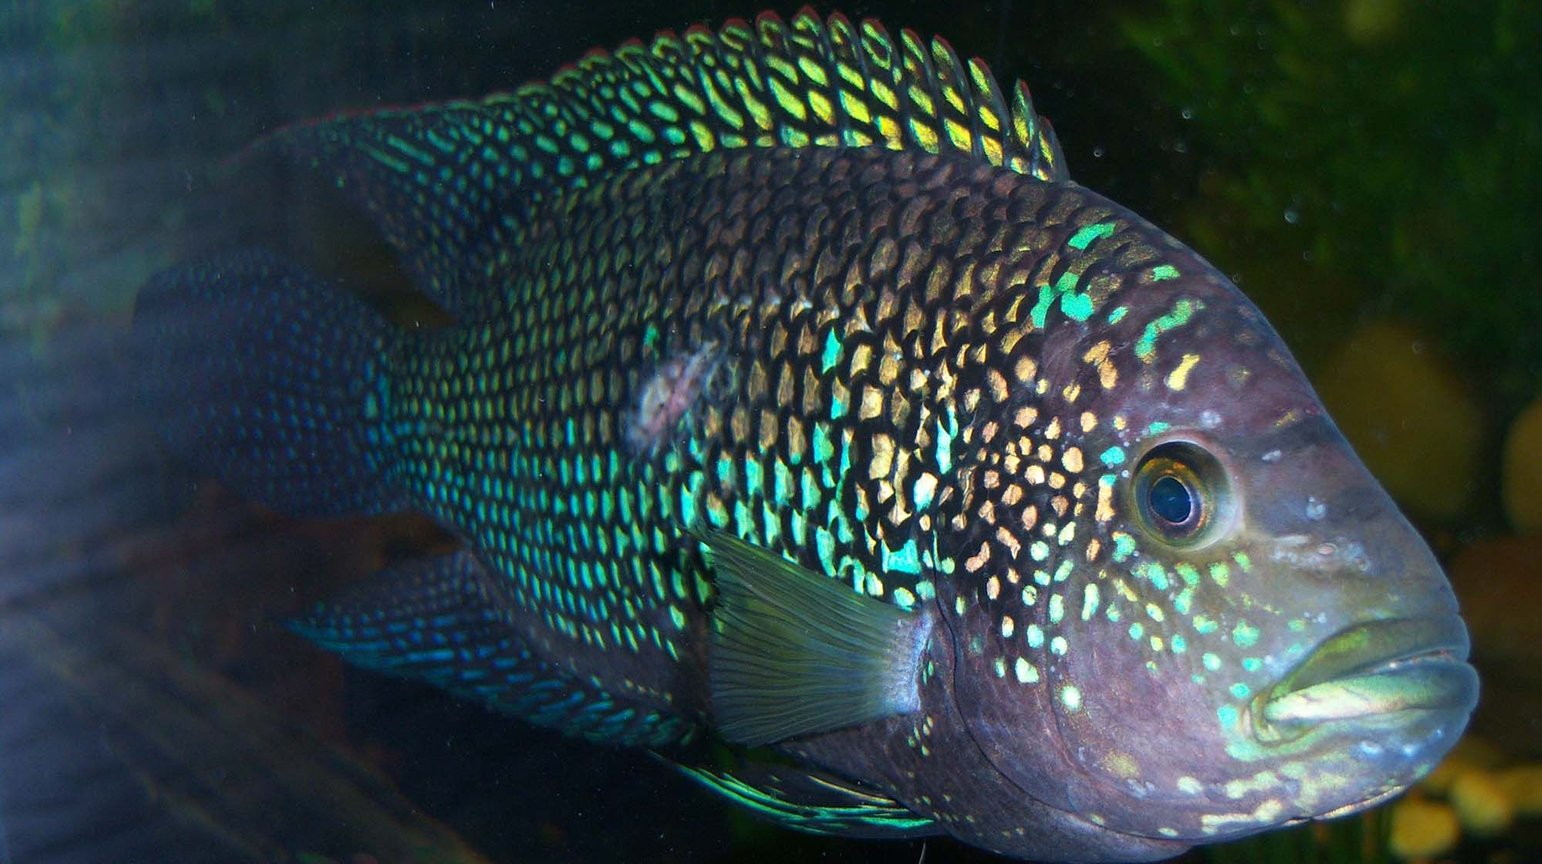 freshwater fish - nandopsis octofasciatum - jack dempsey stocking in 150 gallons tank - 7 inch Jack Dempsey Cichlid